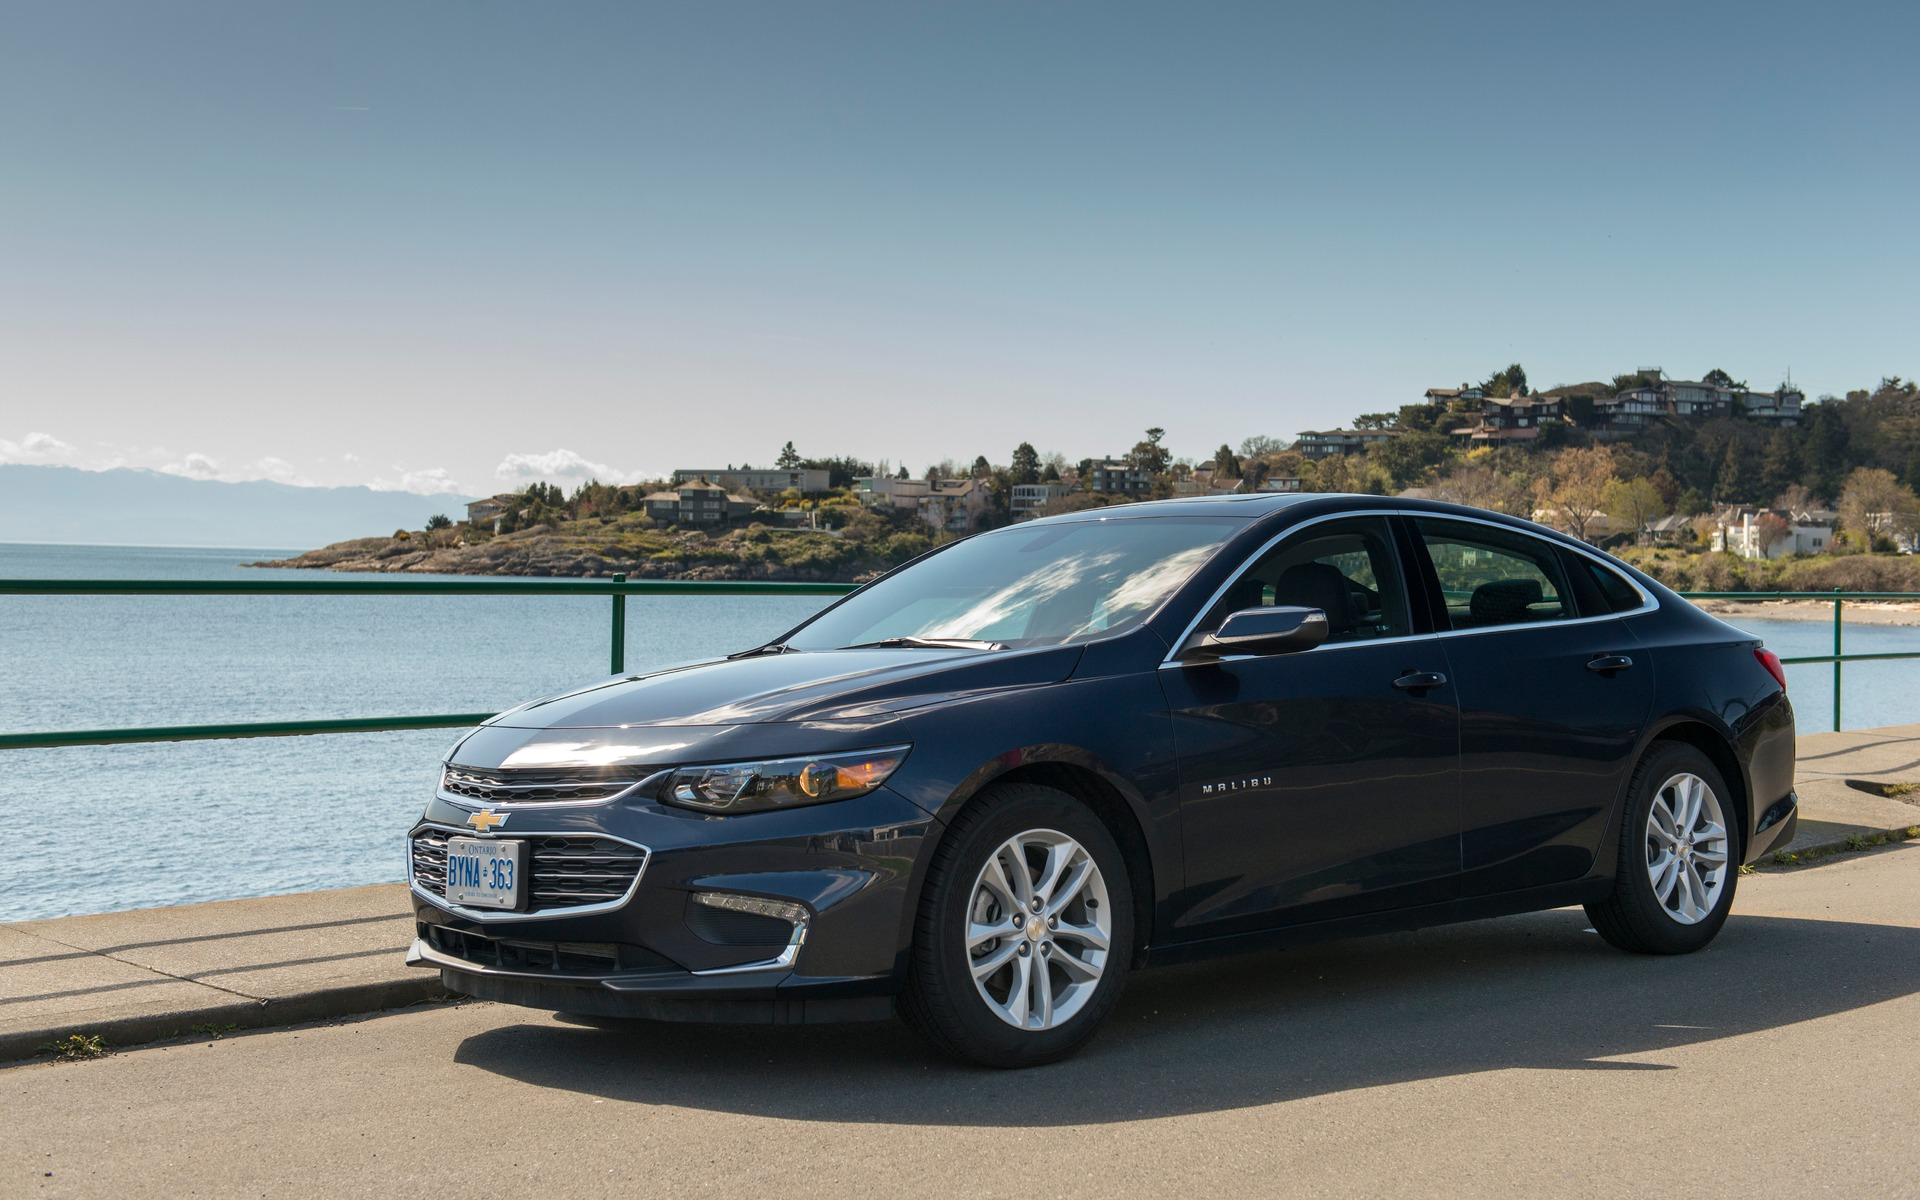 2017 Chevrolet Malibu News Reviews Picture Galleries And Videos 68 Chevy Wiring Diagram The Car Guide